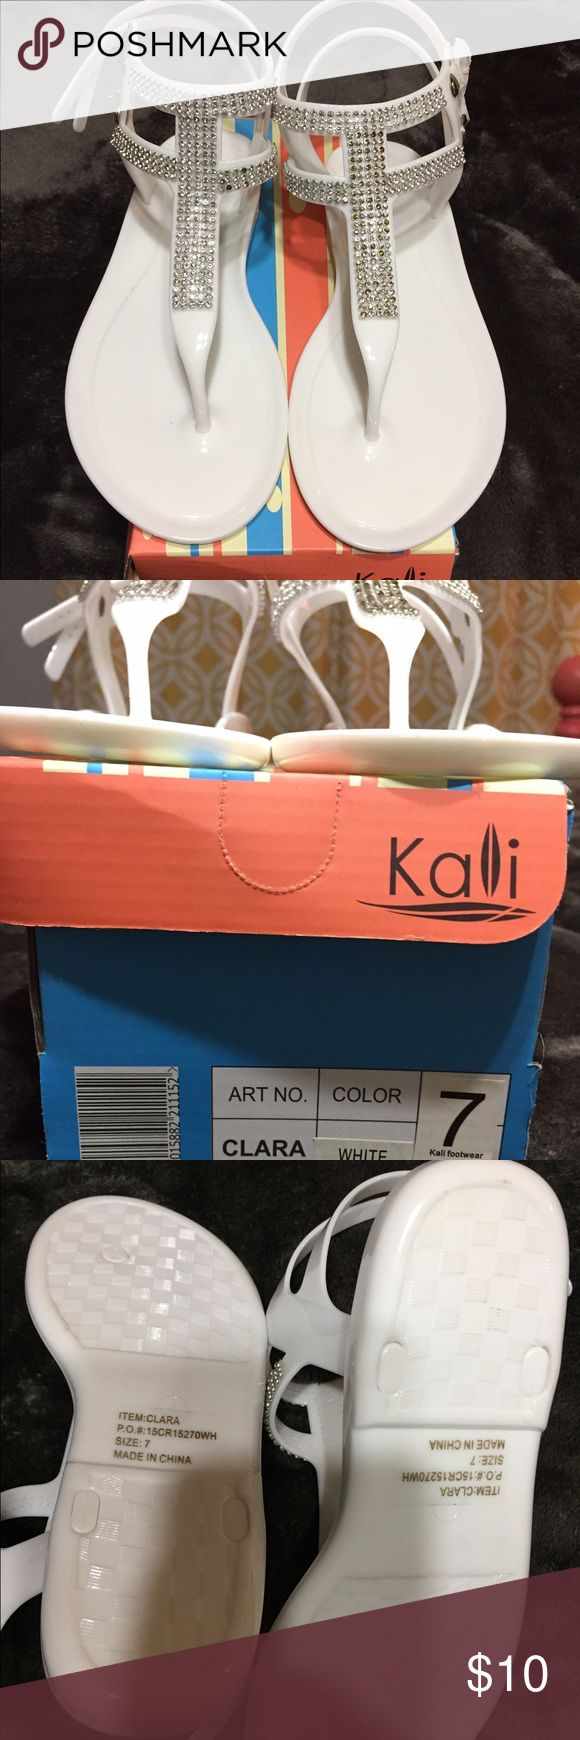 🆕 Kali White Sandals NWOT - Beautiful bling white plastic sandals, never worn, still in the box, great with any outfit. Kali Shoes Sandals